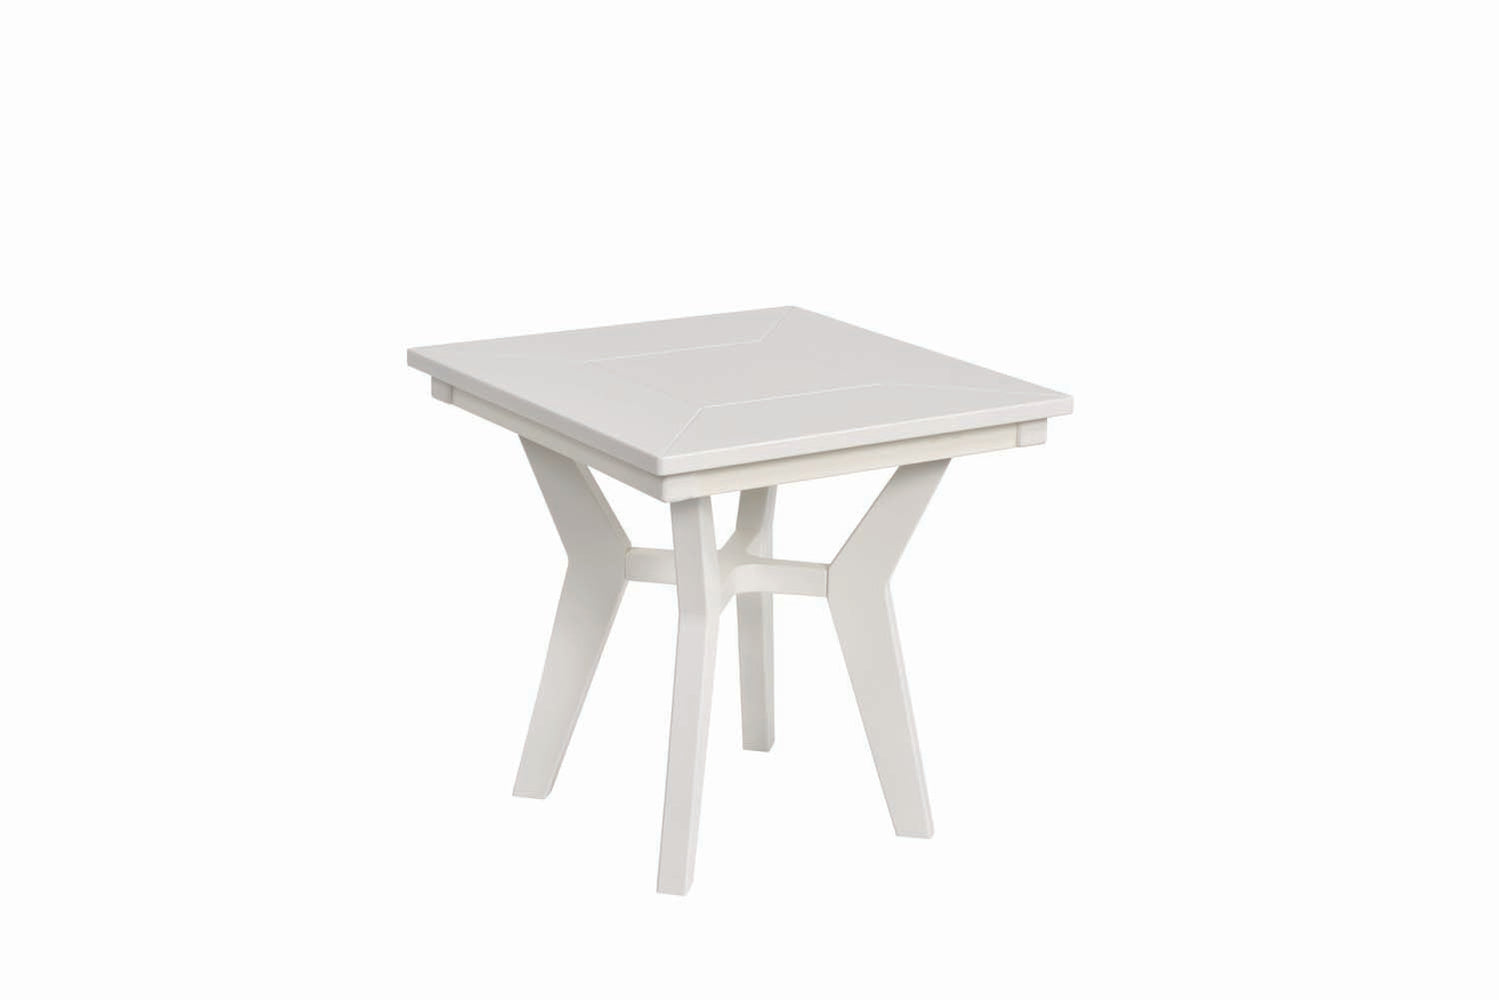 Berlin Gardens Mayhew Square End Table